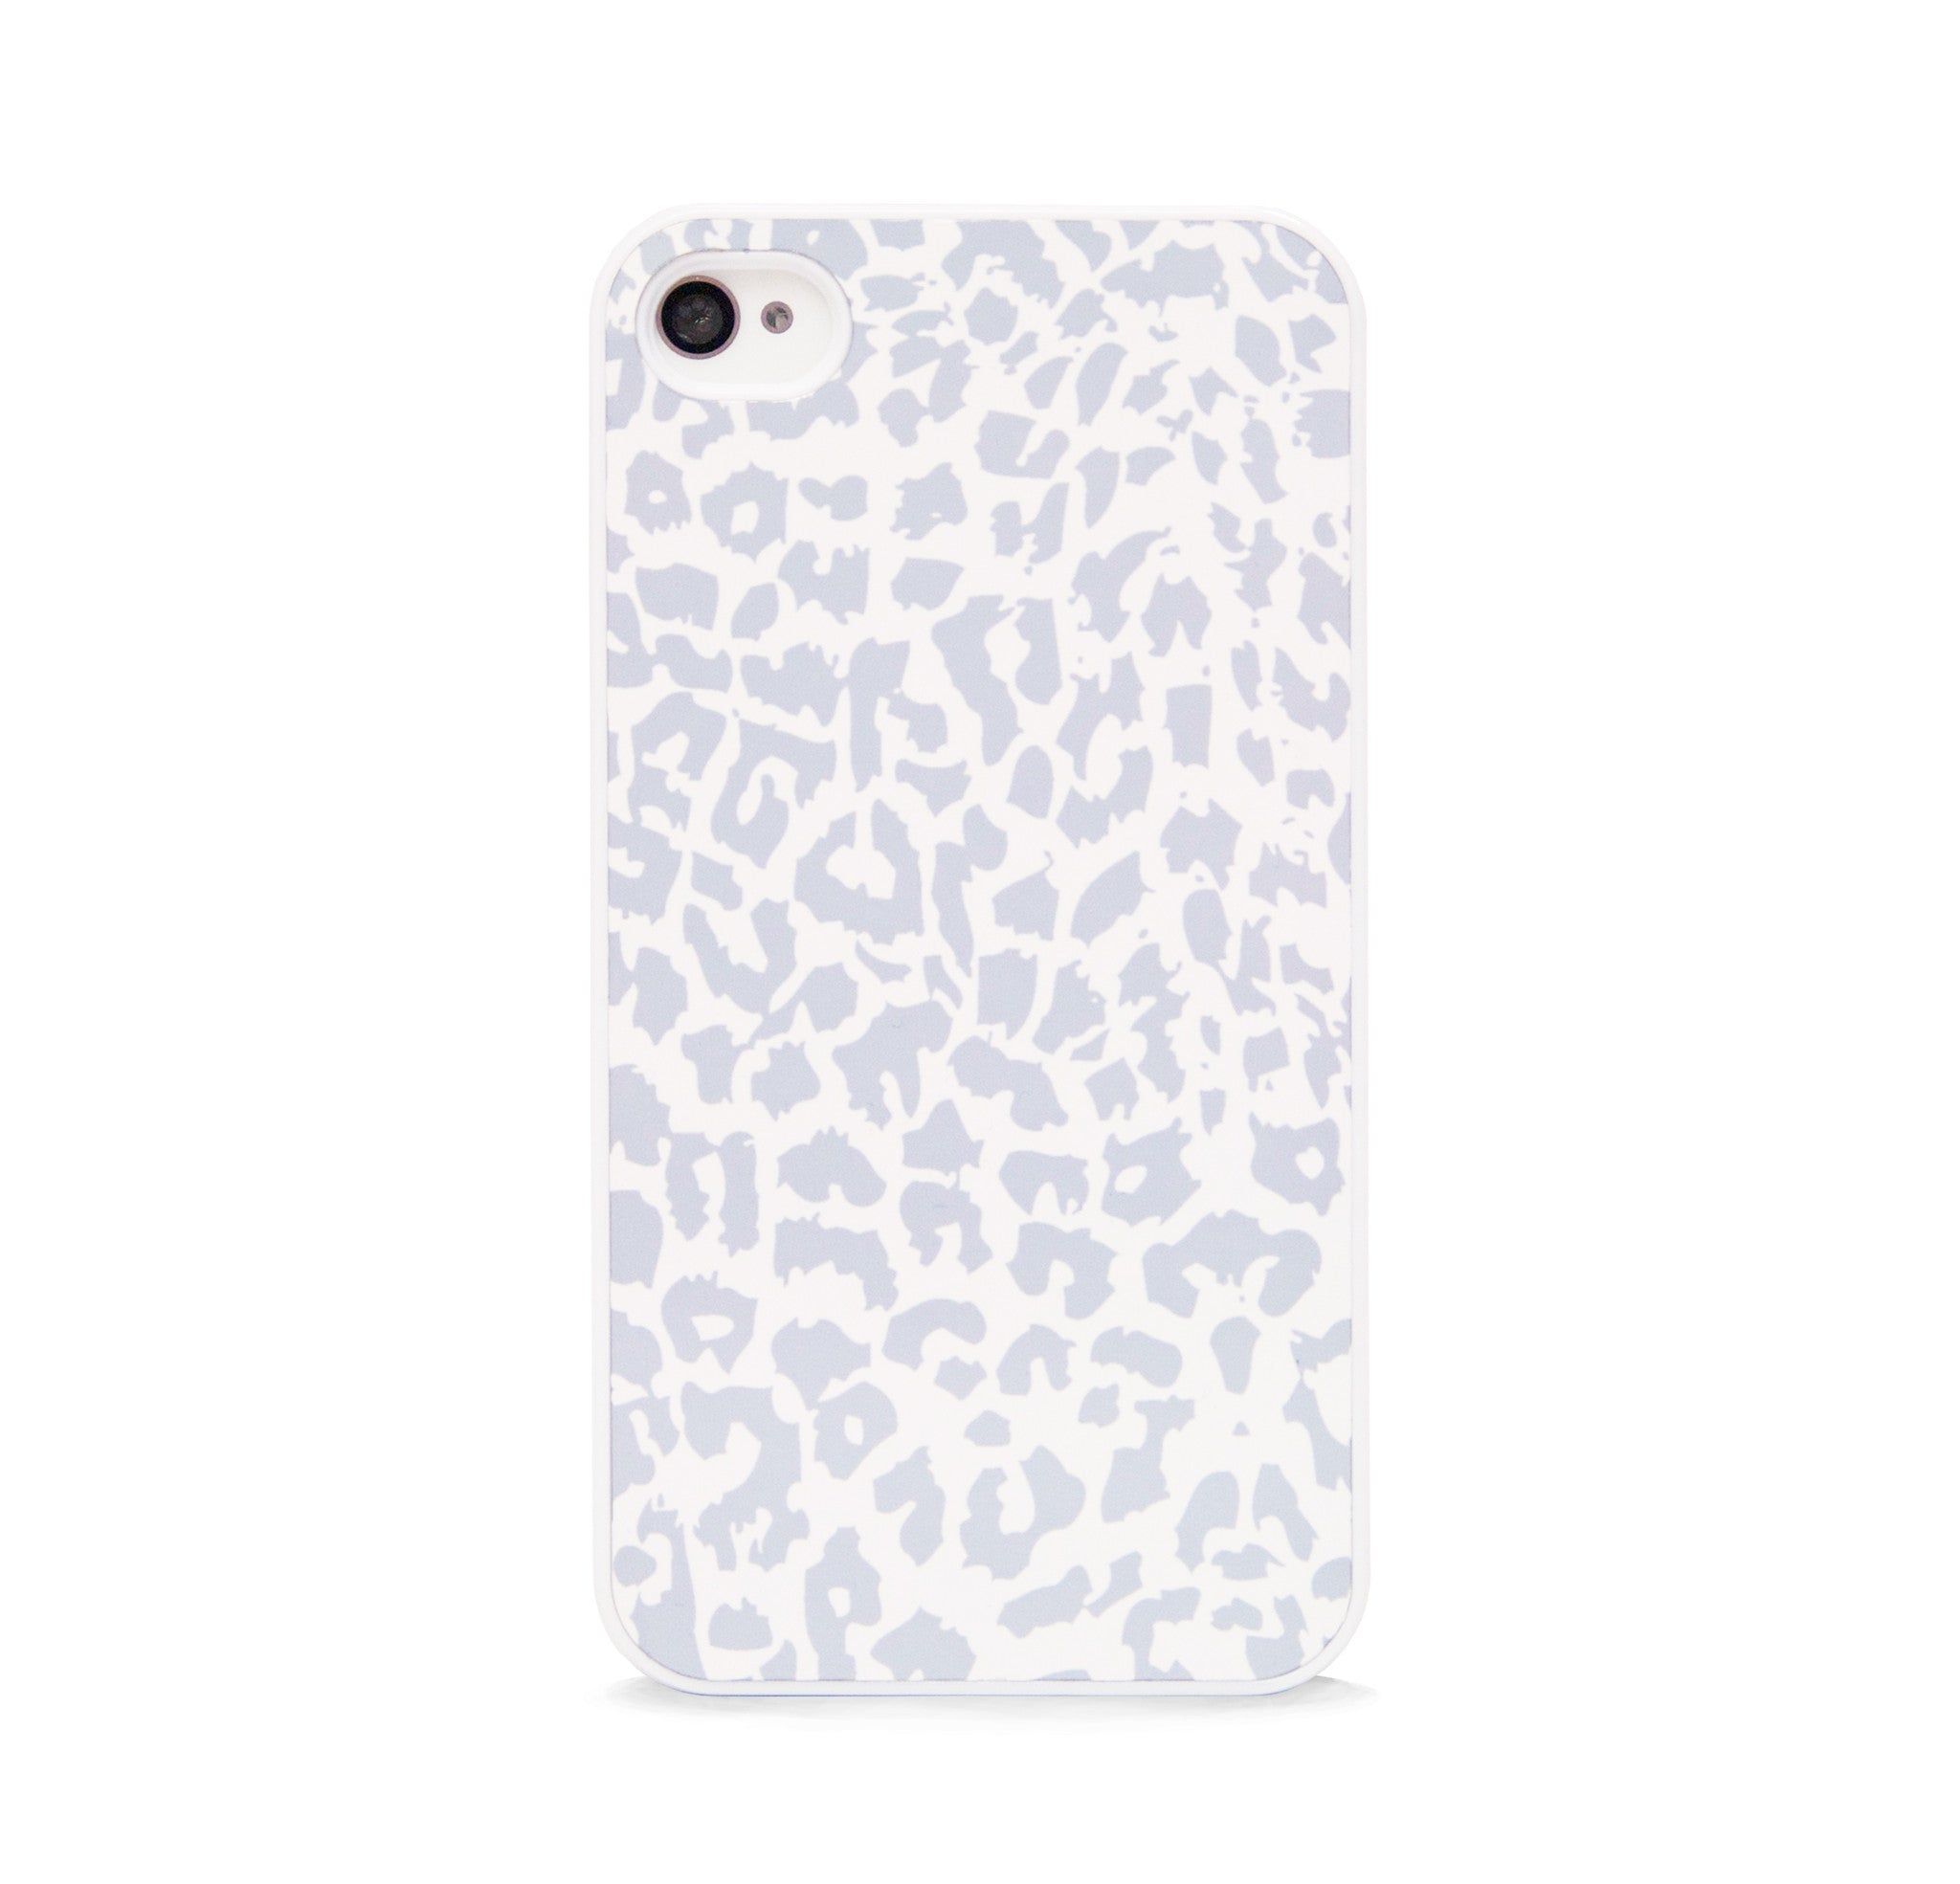 LEOPARD GREY FOR IPHONE 4/4S